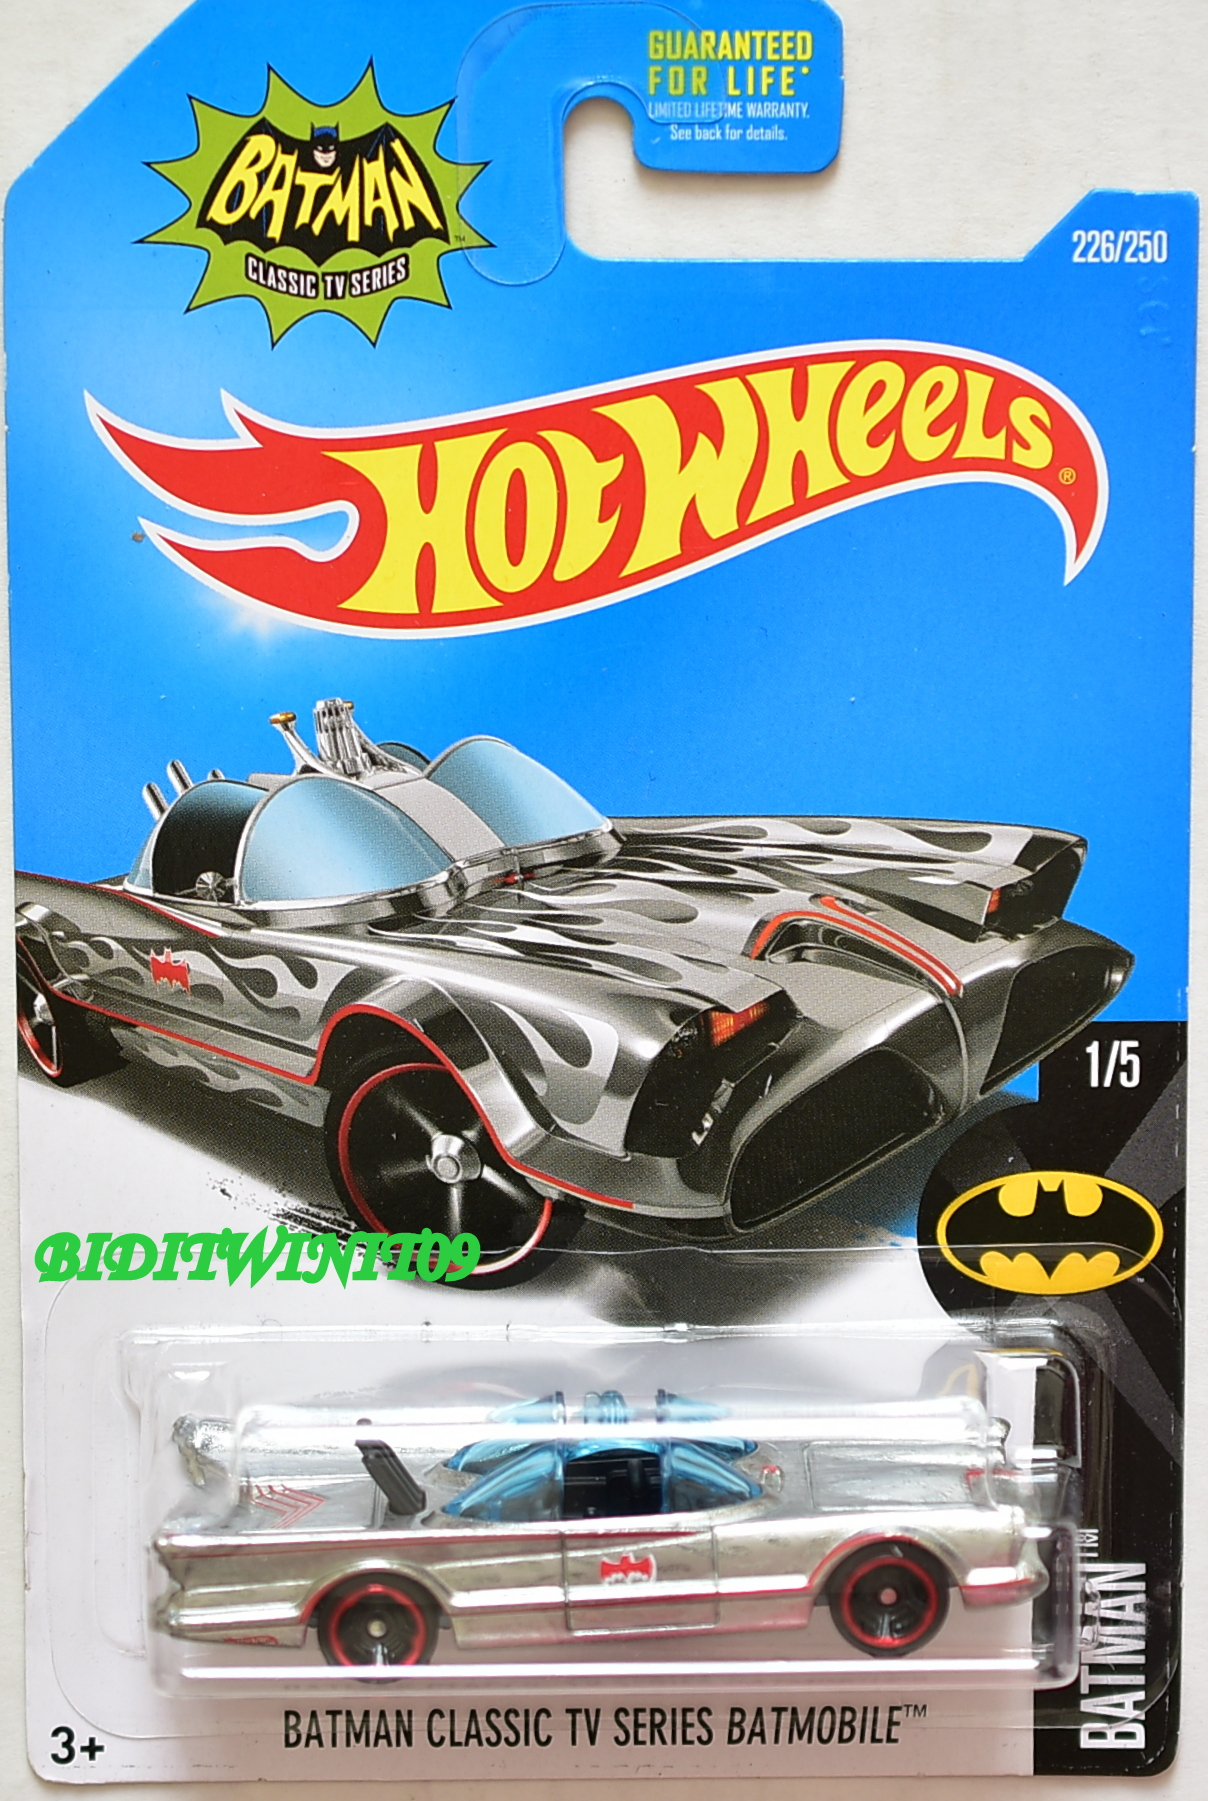 HOT WHEELS 2016 BATMAN CLASSIC TV SERIES BATMOBILE #1/5 ZAMAC